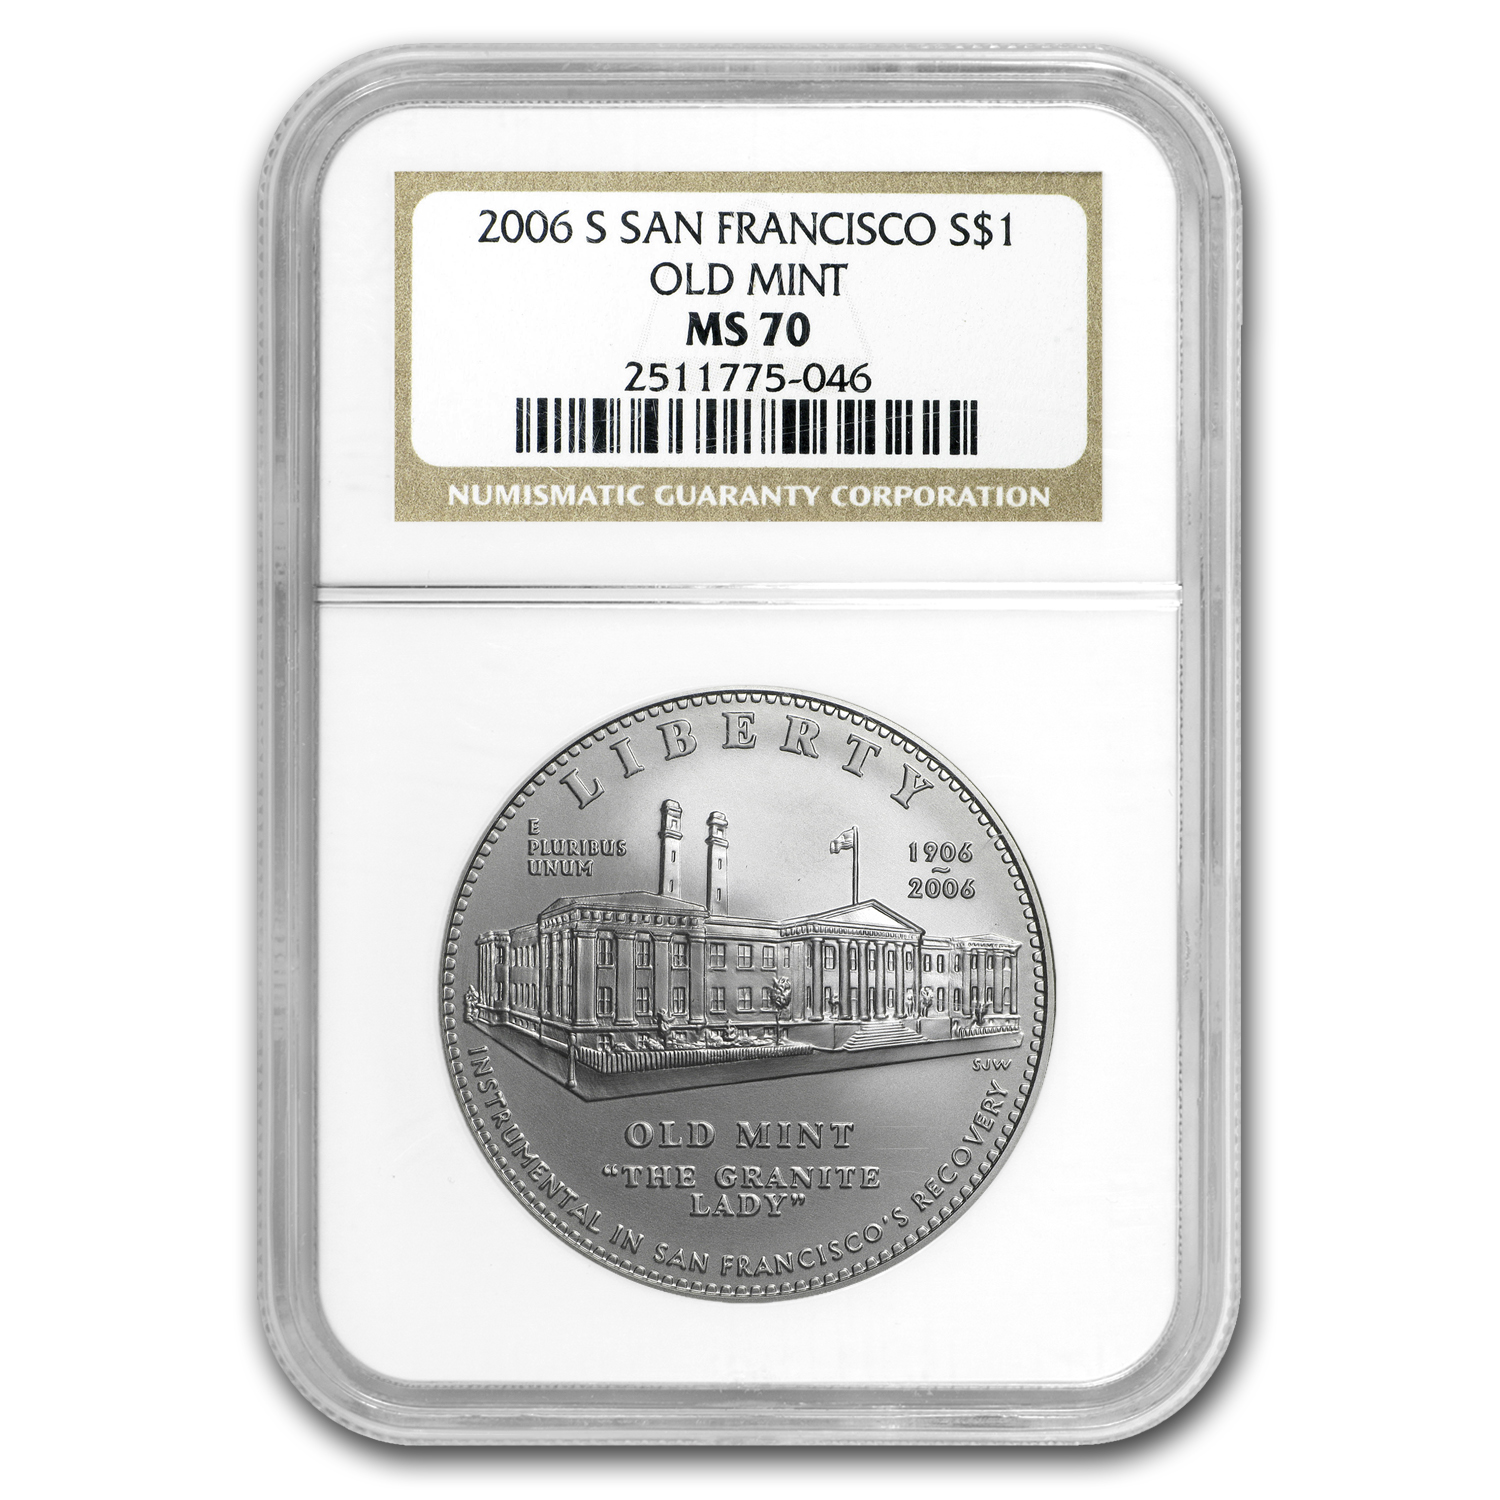 2006-S San Francisco Old Mint $1 Silver Commem MS-70 NGC